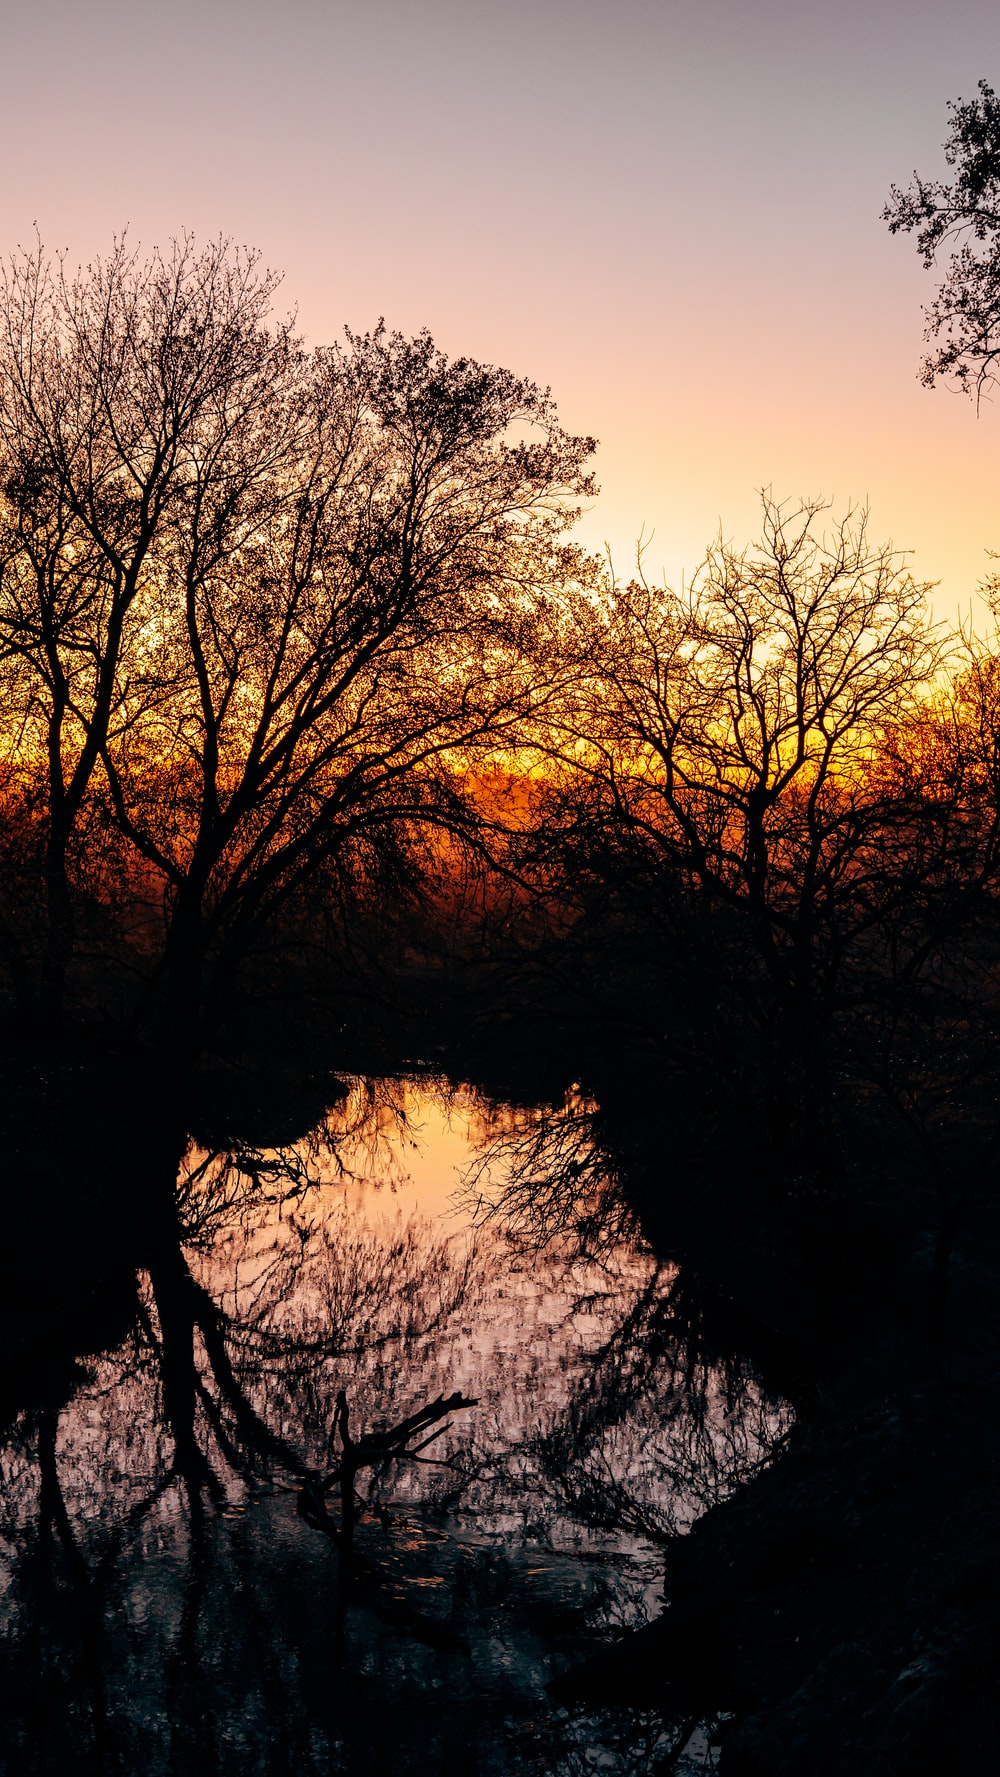 brown trees beside body of water during sunset